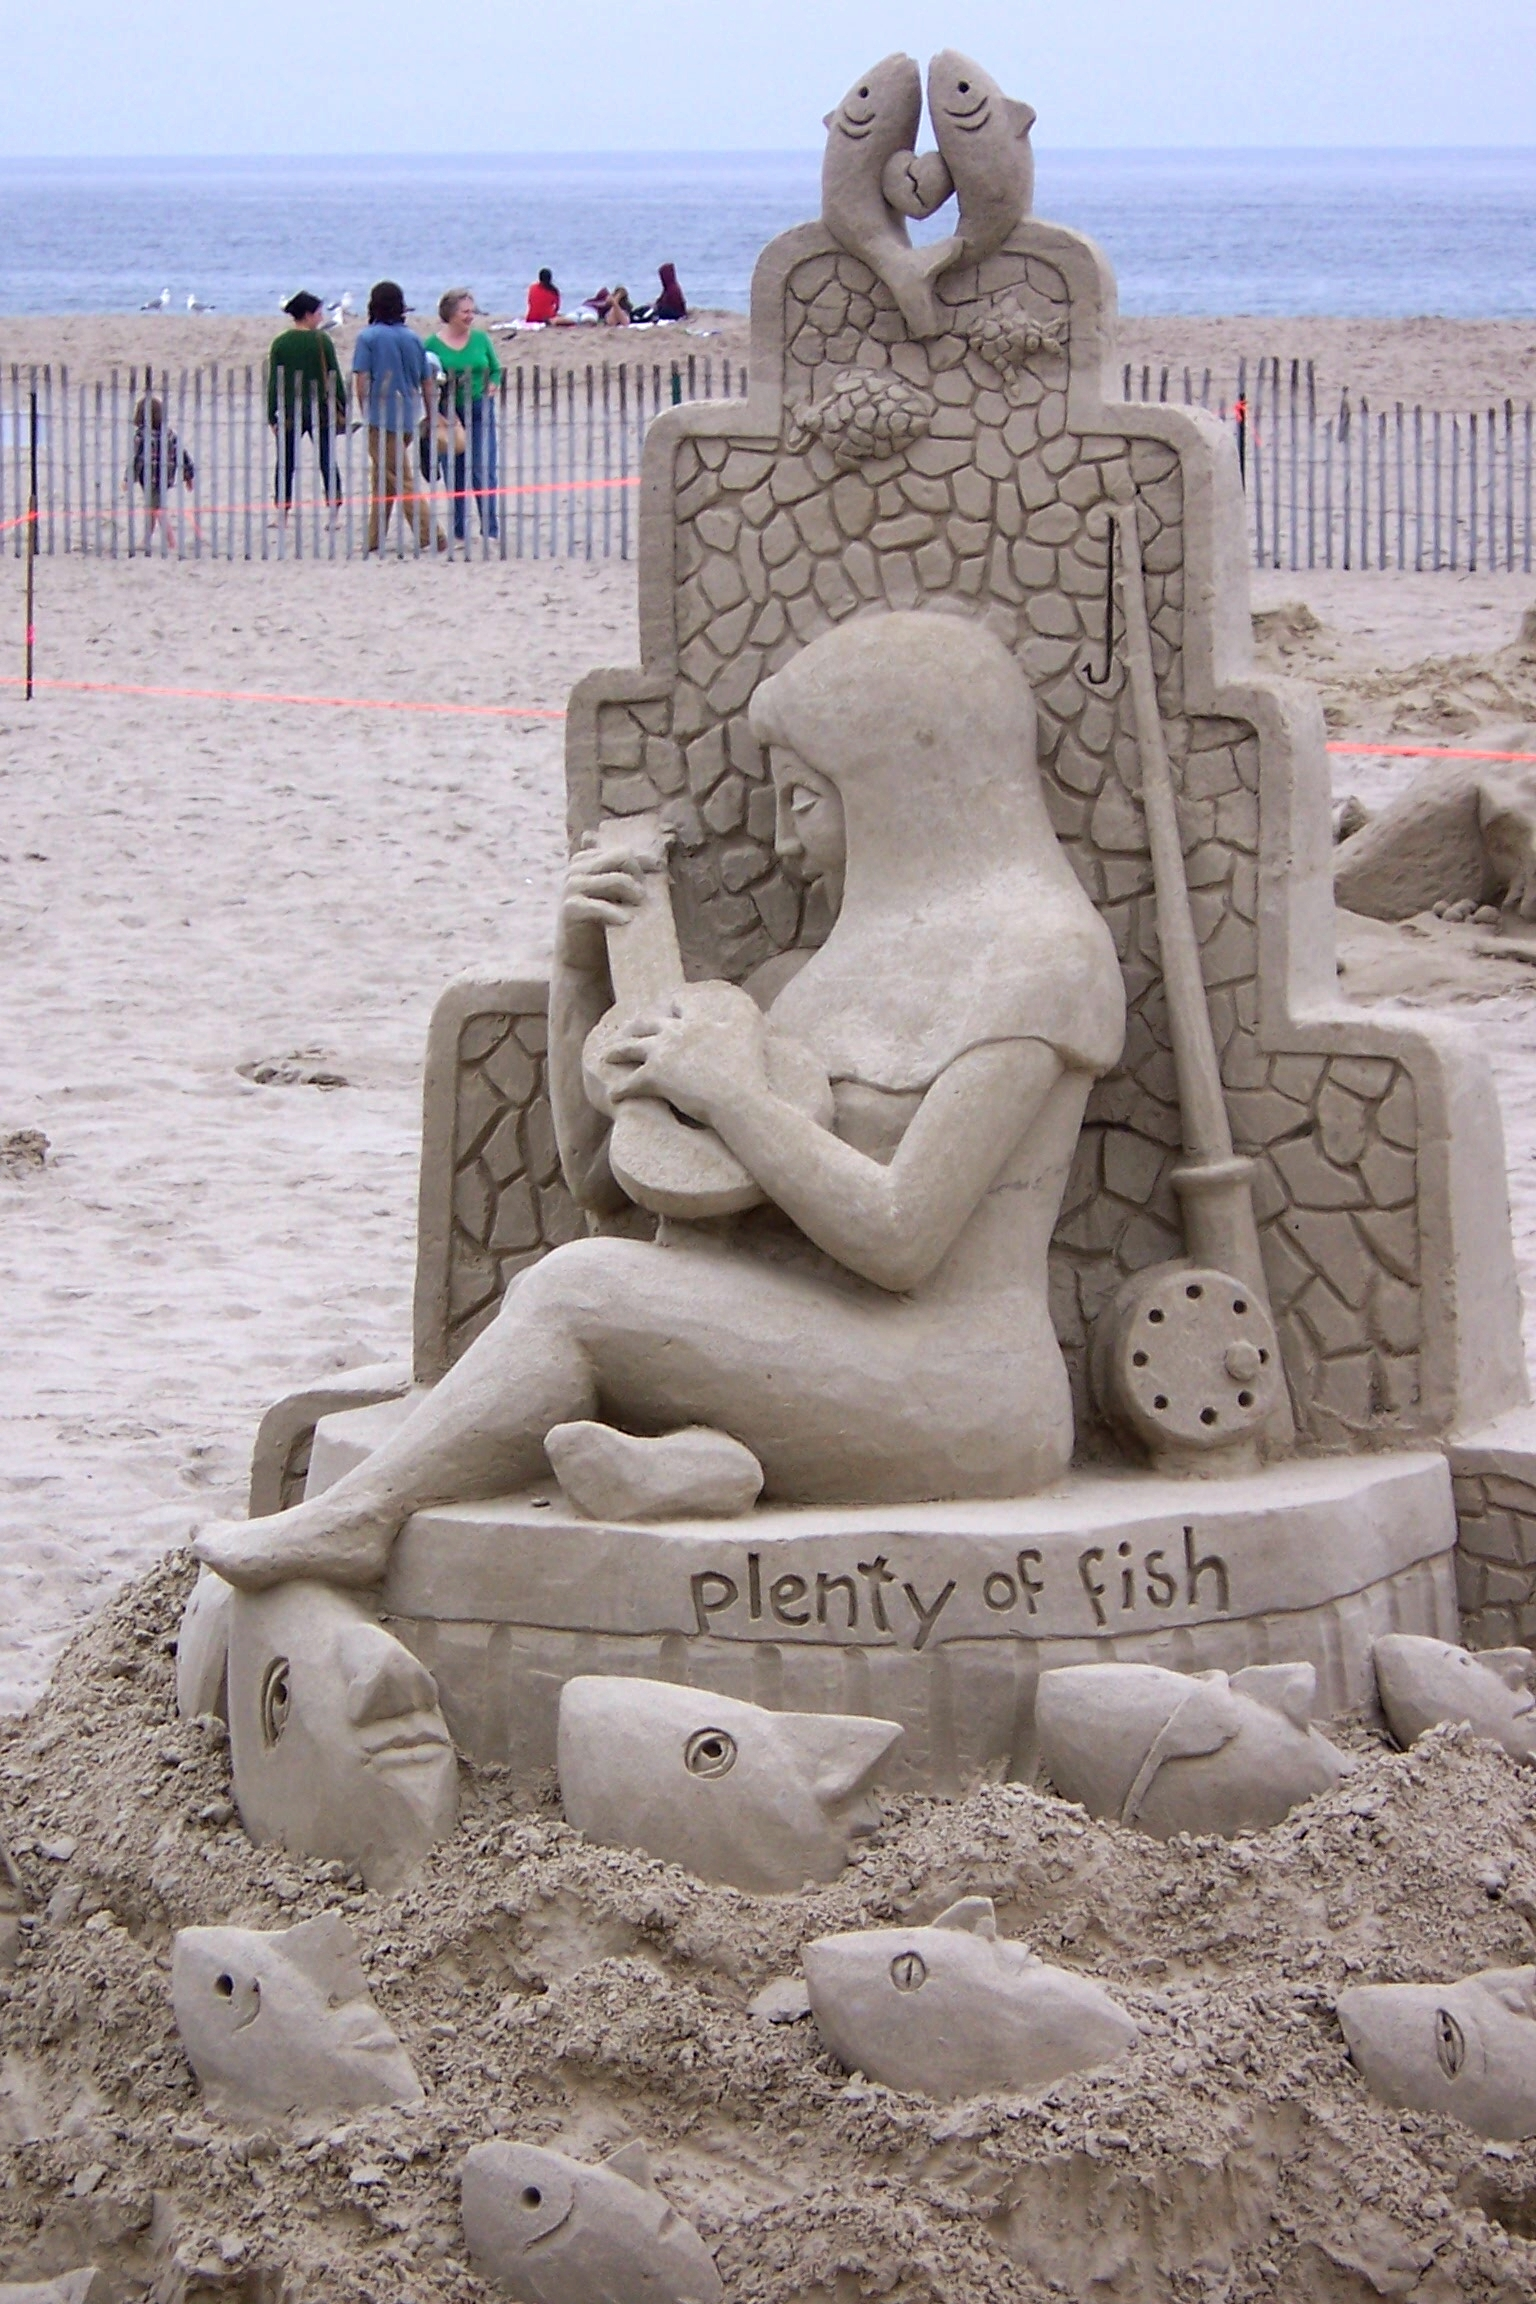 Sand creations plenty of fish flickr photo sharing for Pleny of fish